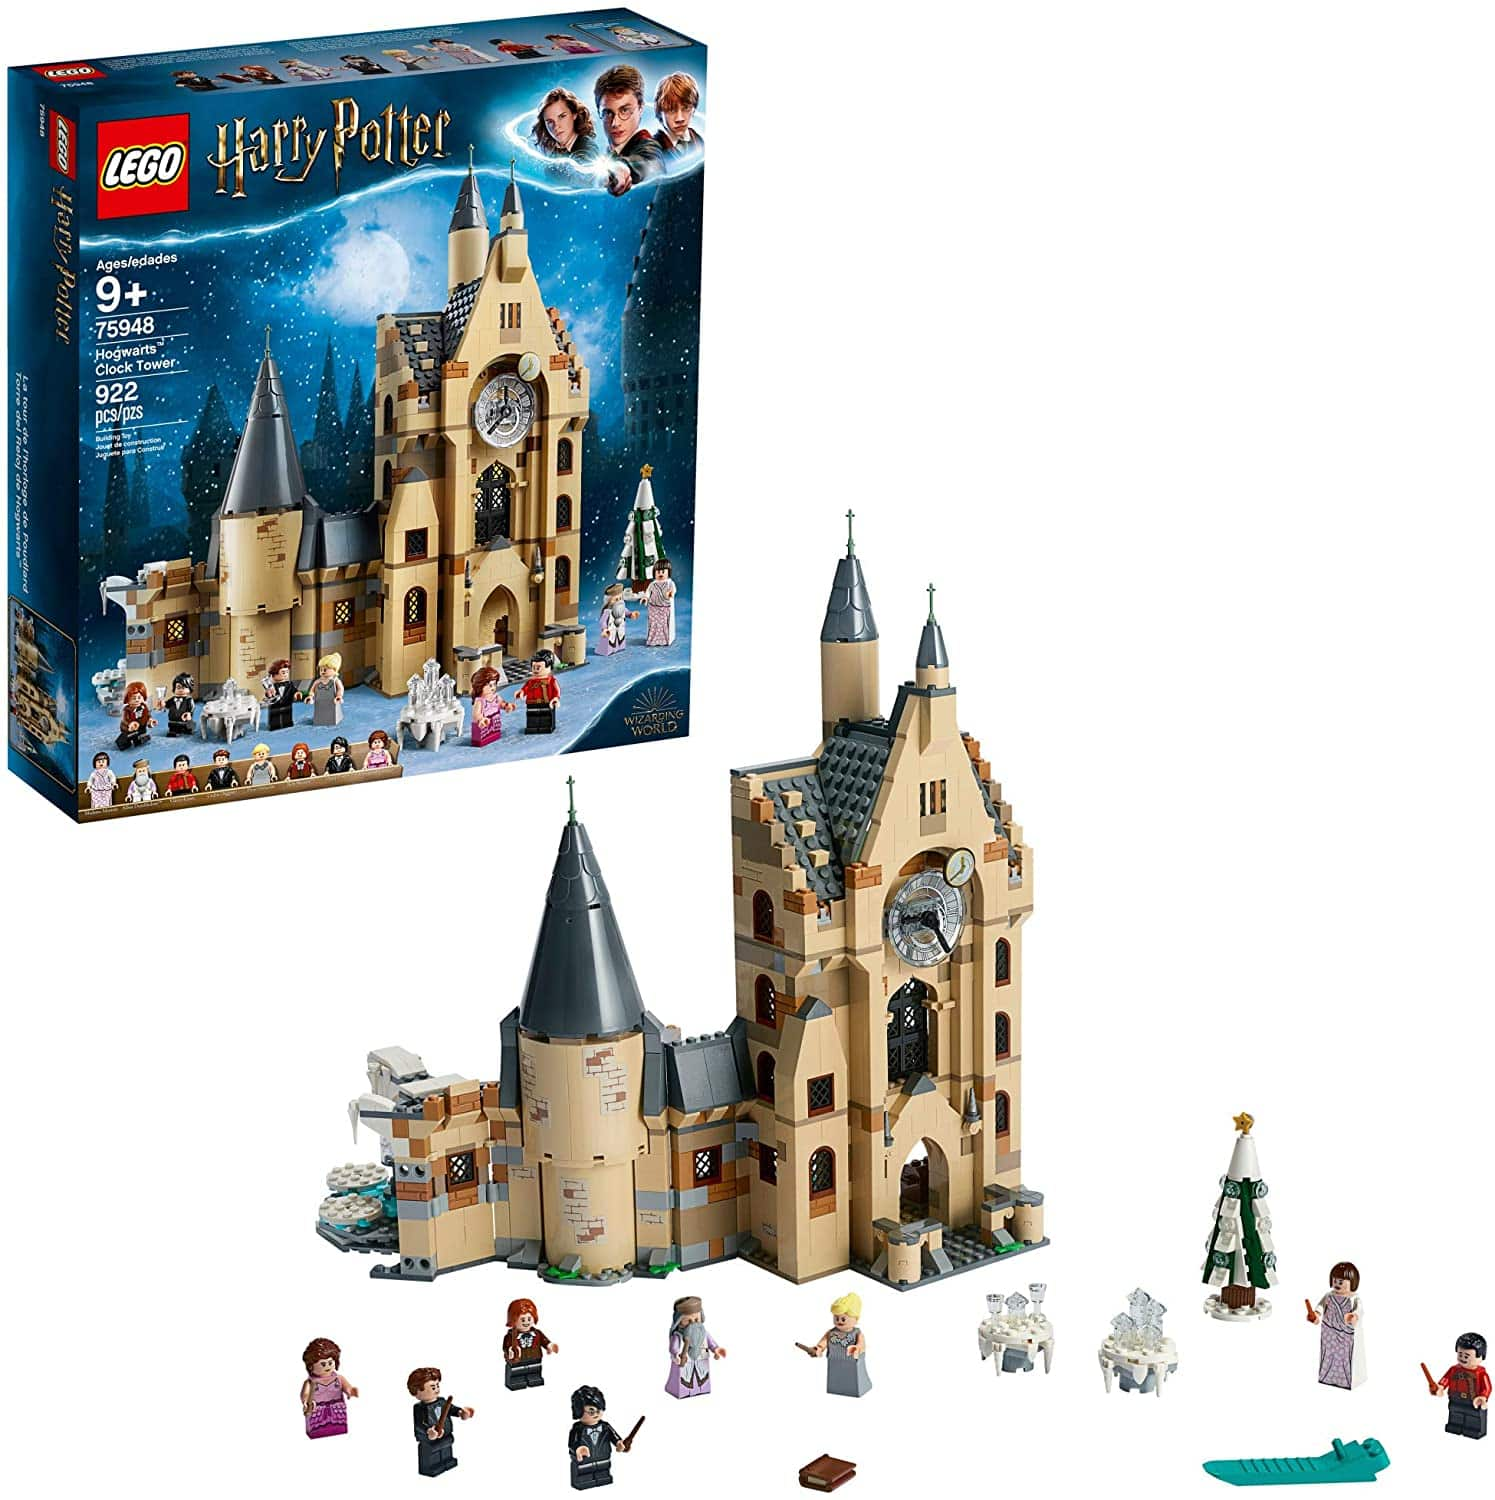 LEGO: 3 Free Gifts w/ Purchase of Select LEGO Harry Potter Sets